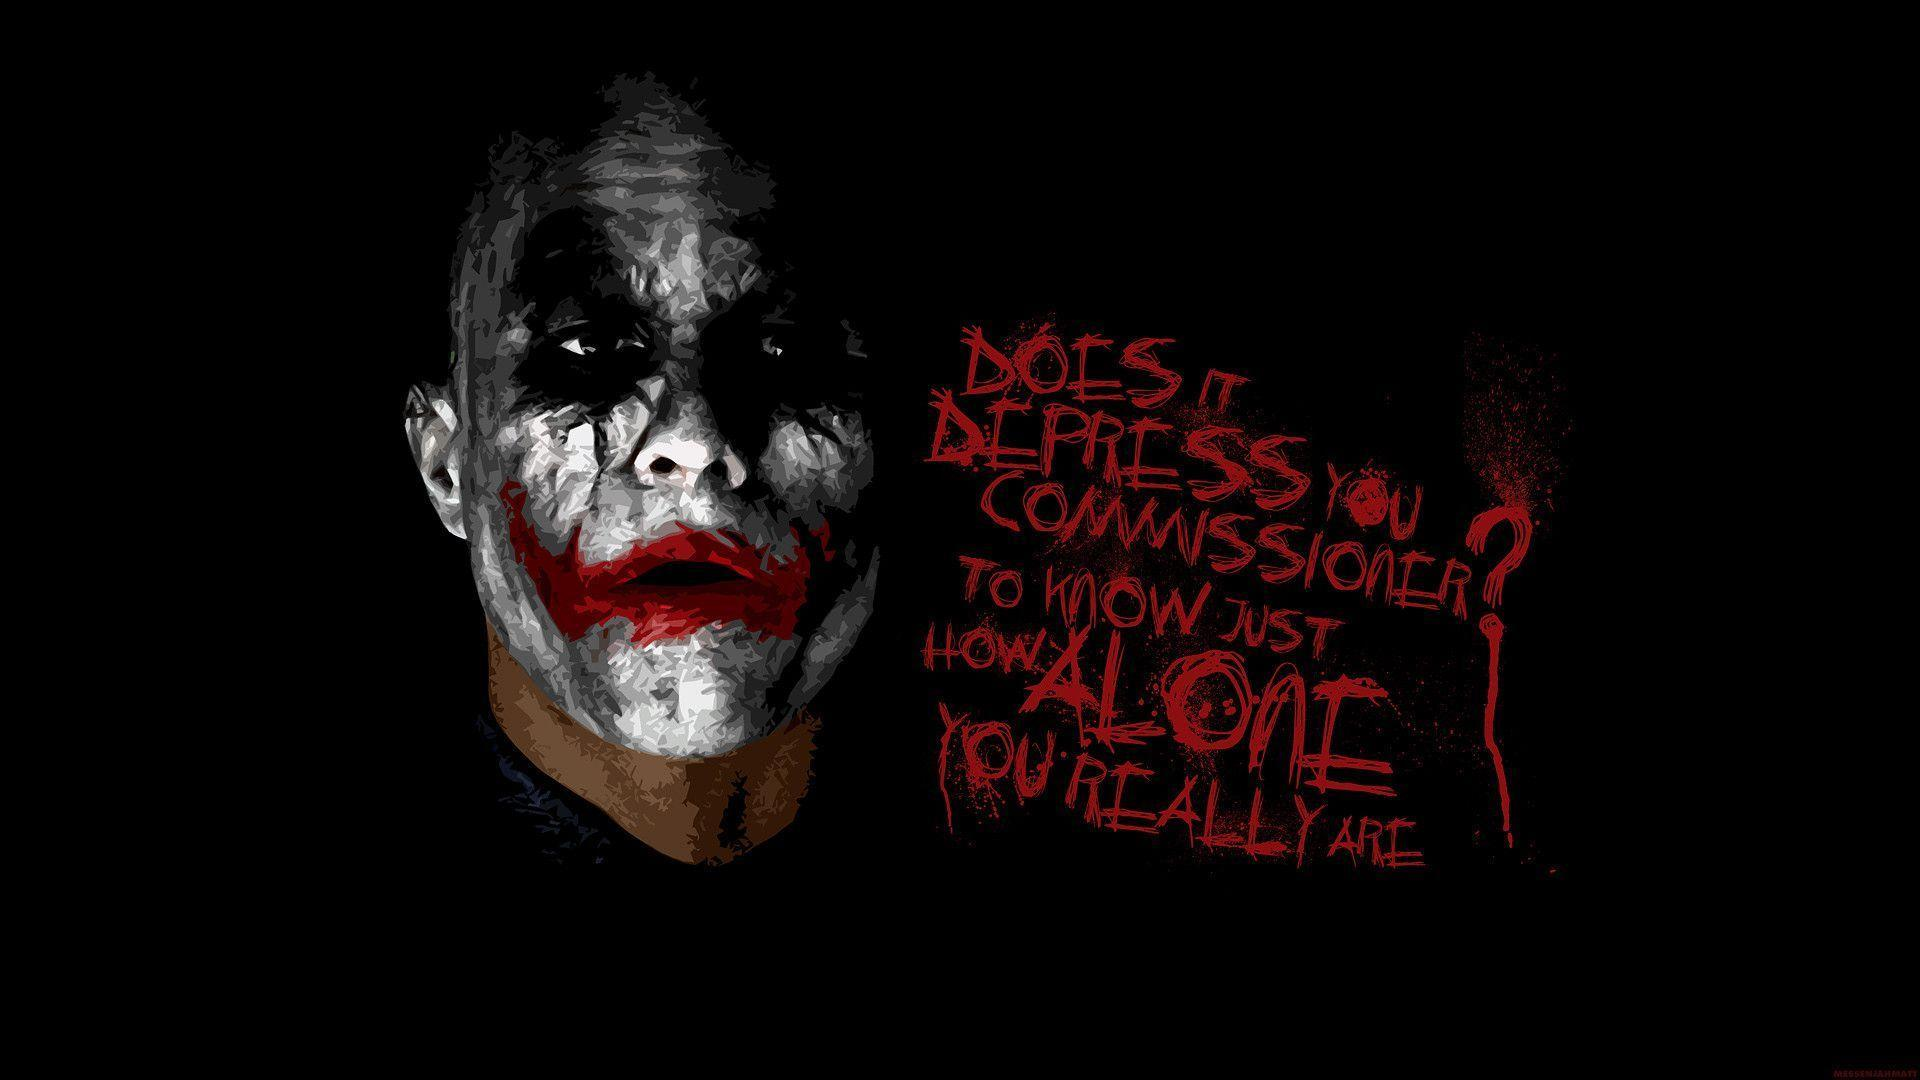 Hd Joker Cool Wallpapers Wallpaper Batman Movie